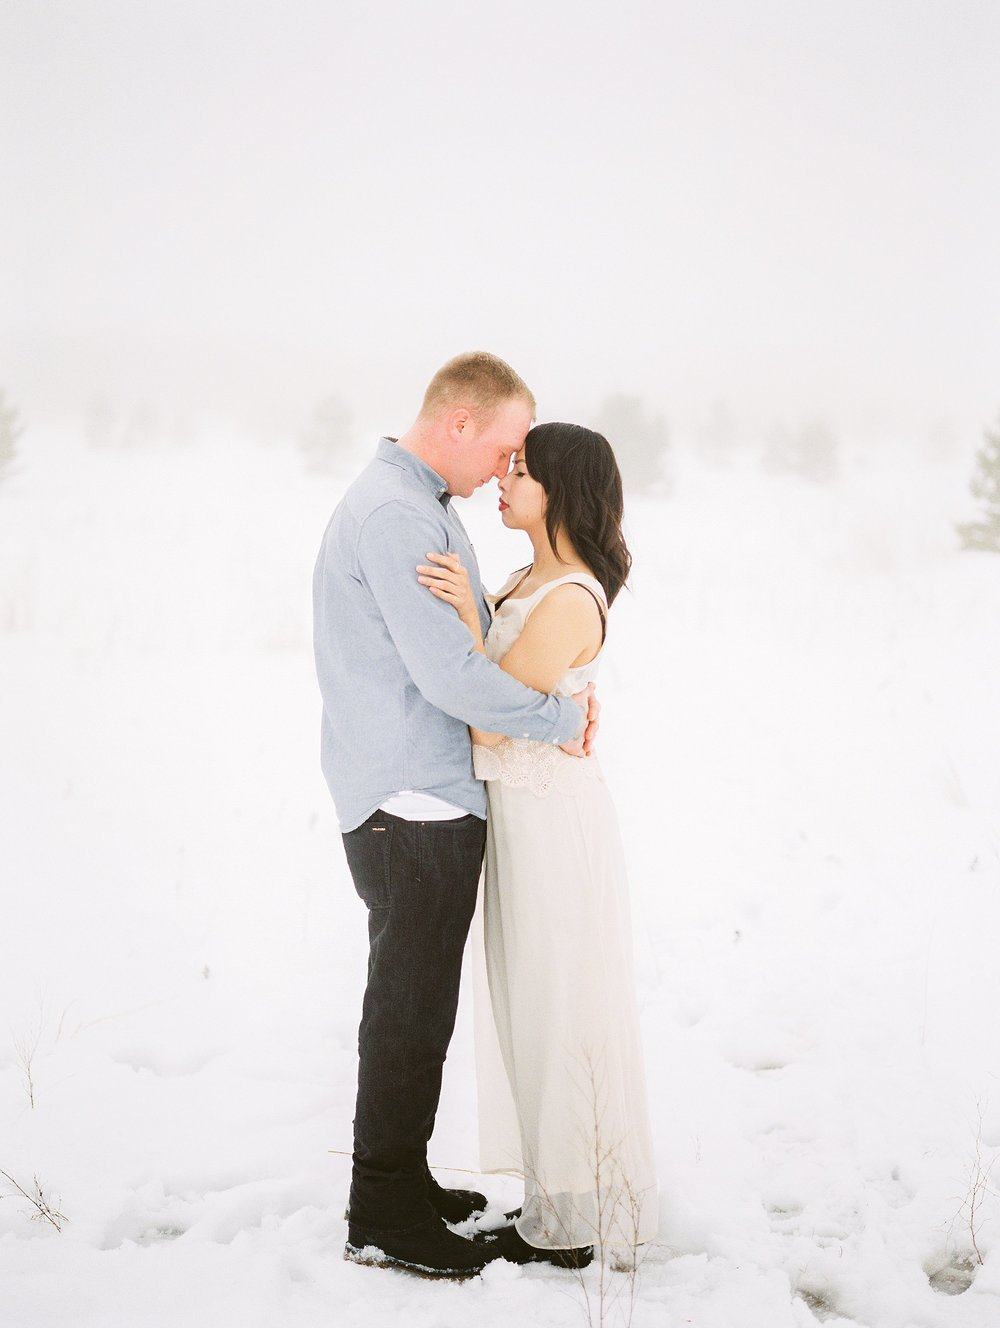 Couples photoshoot winter outfit ideas | Engagement session in the Canadian winter | fine art film photography Keila Marie Photography